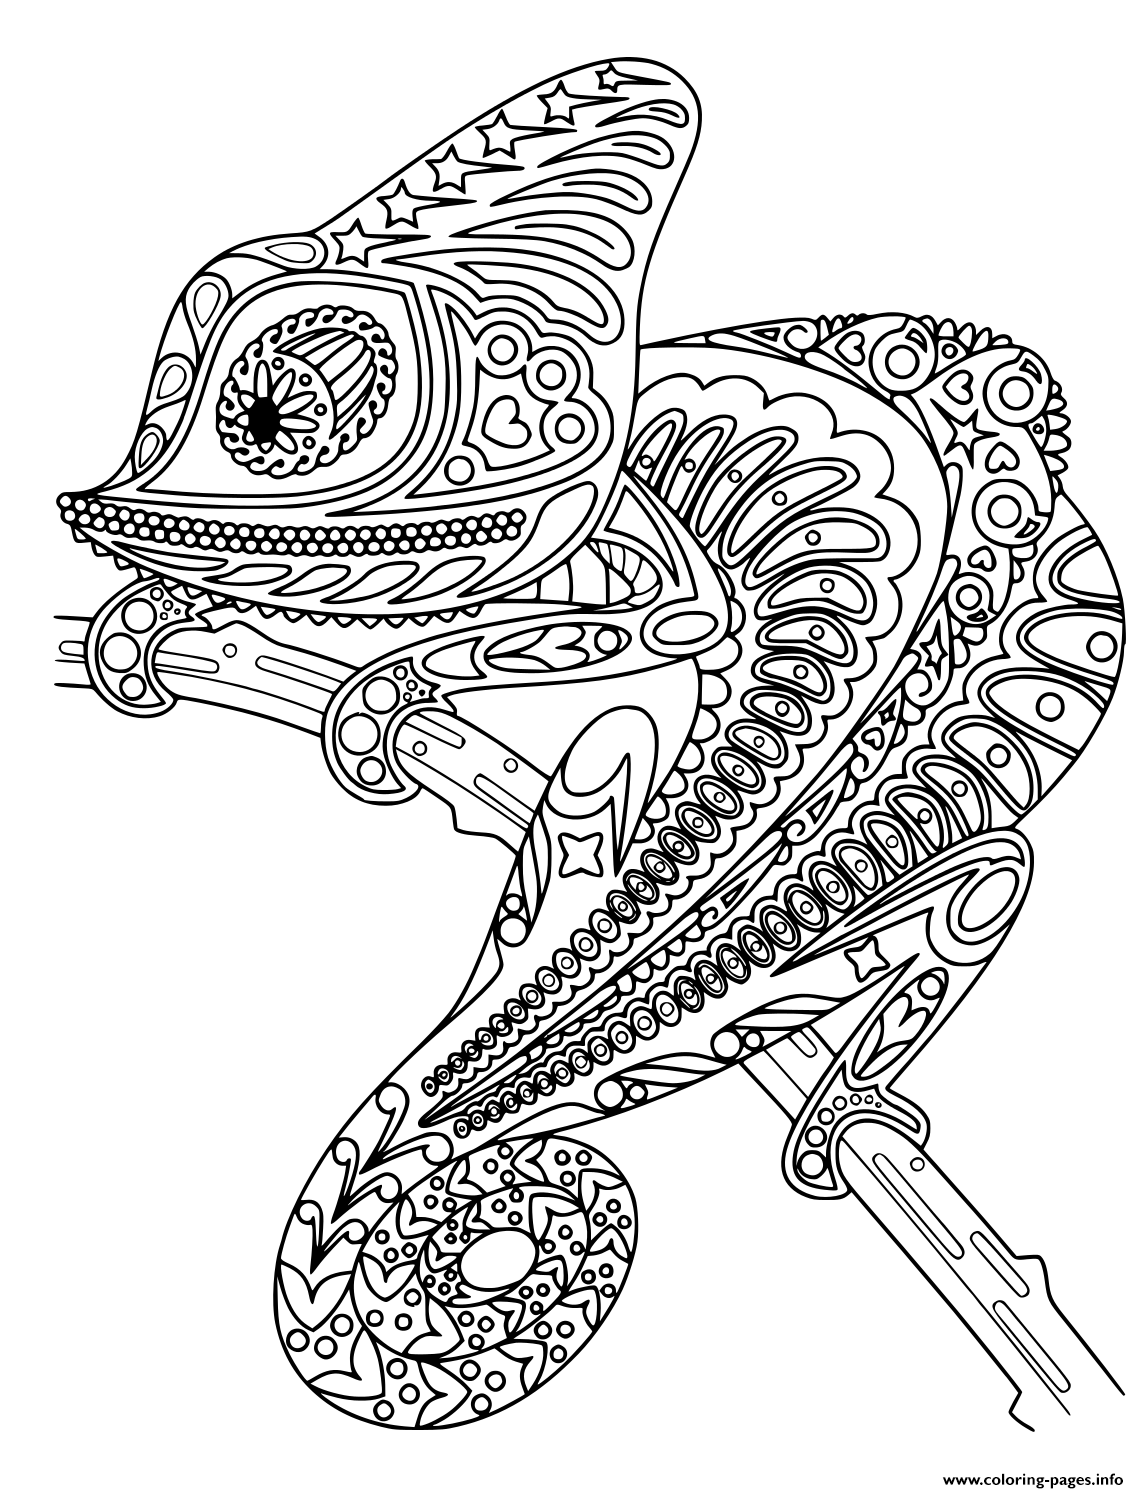 Chameleon Mandala Black And White Coloring Pages Printable